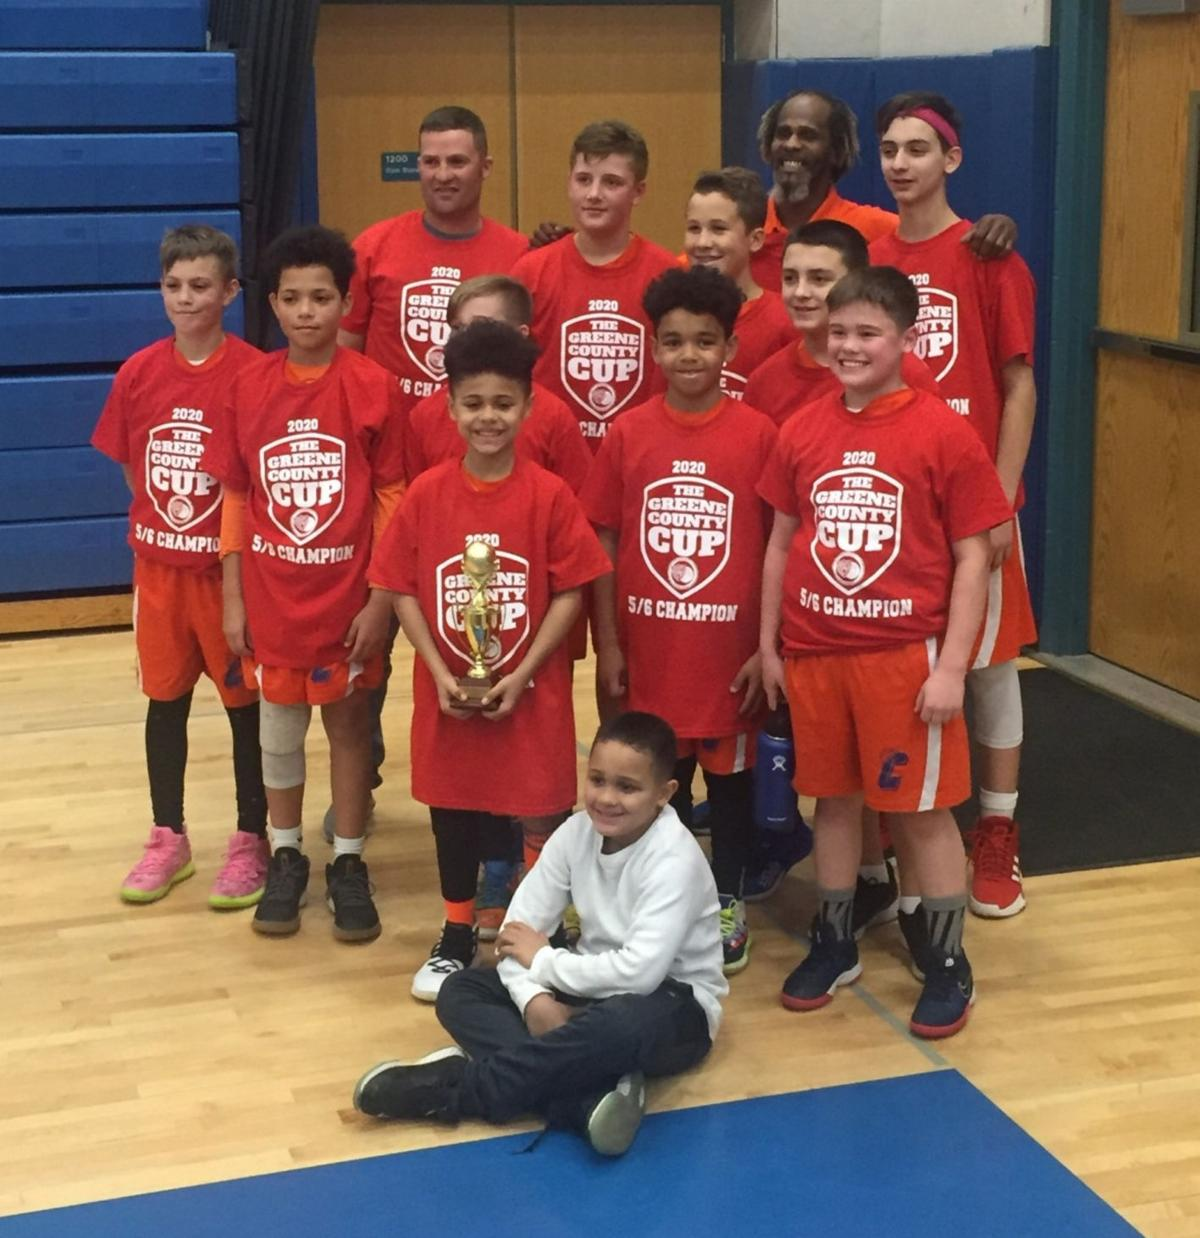 Coxsackie PAL hosts Sixth Annual Youth Tournament